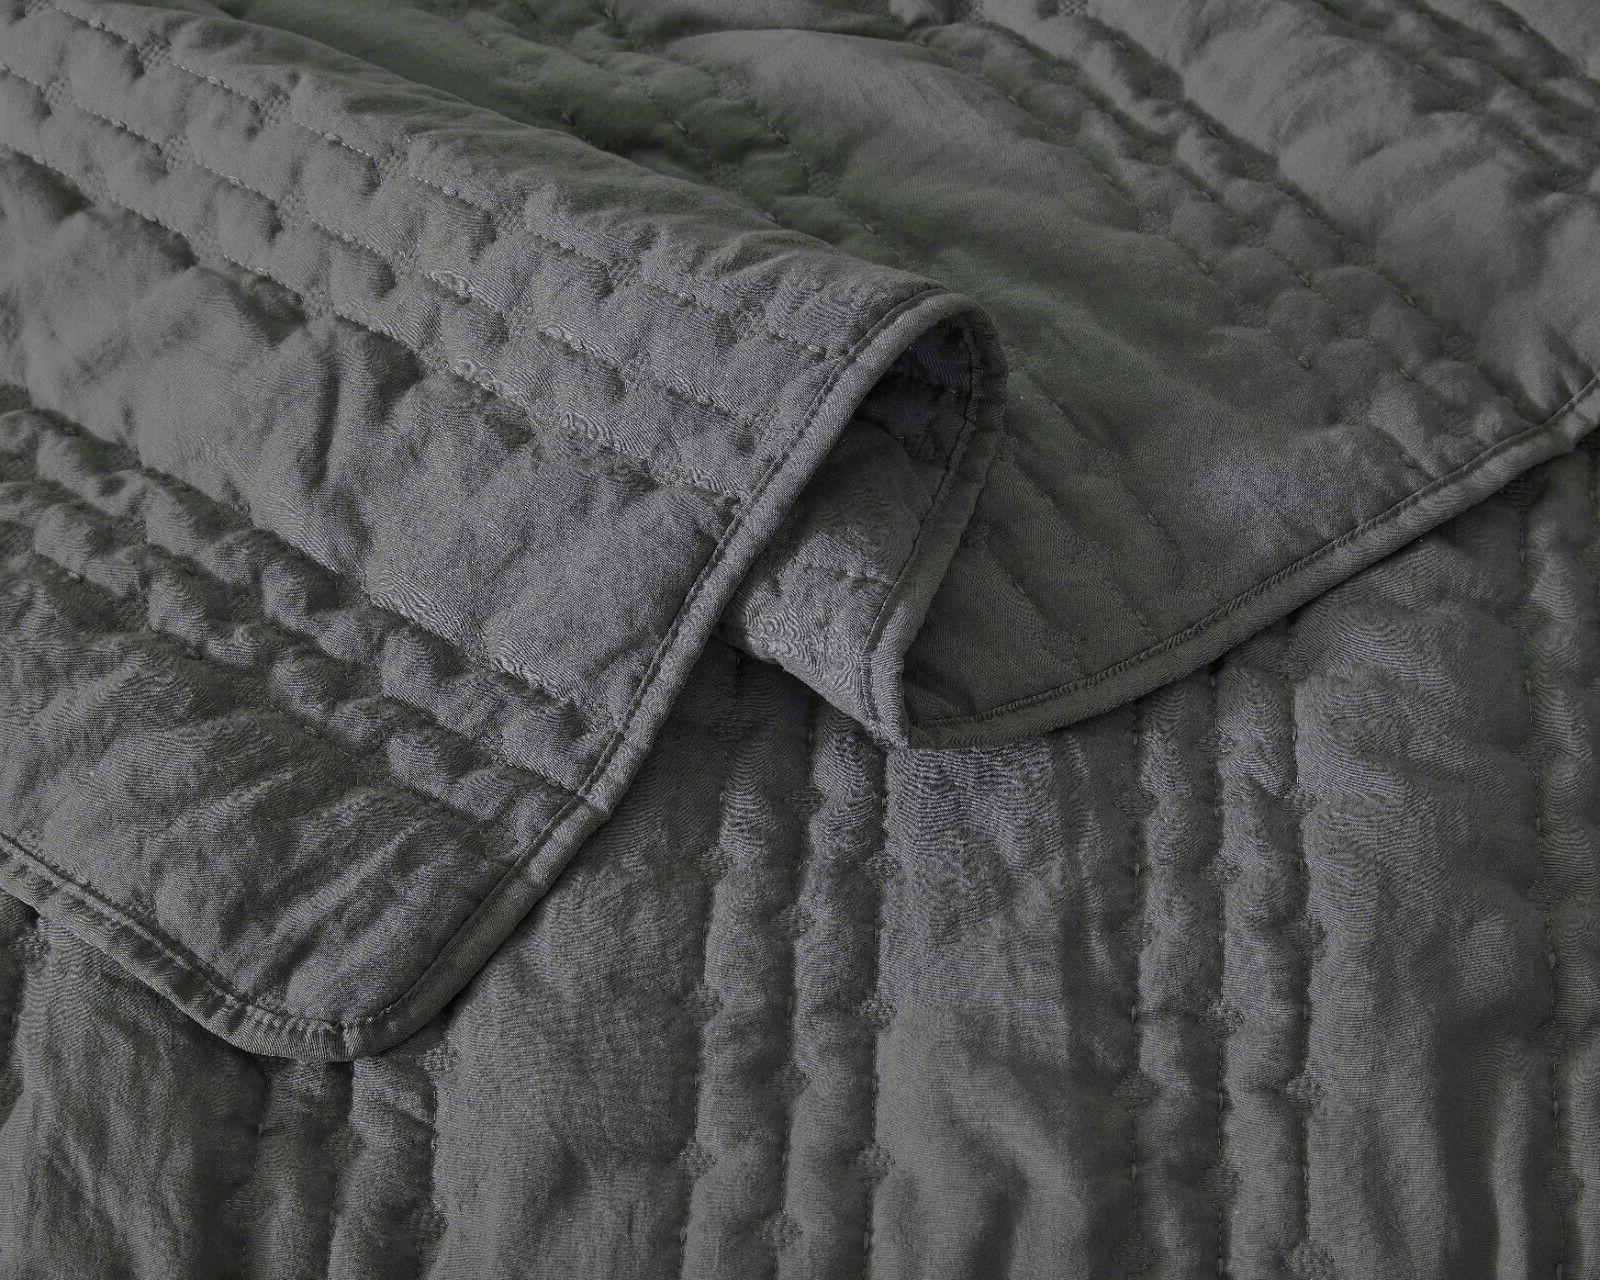 3pc Set Charcoal Gray Stonish Bedspread Stone-Washed, Bed